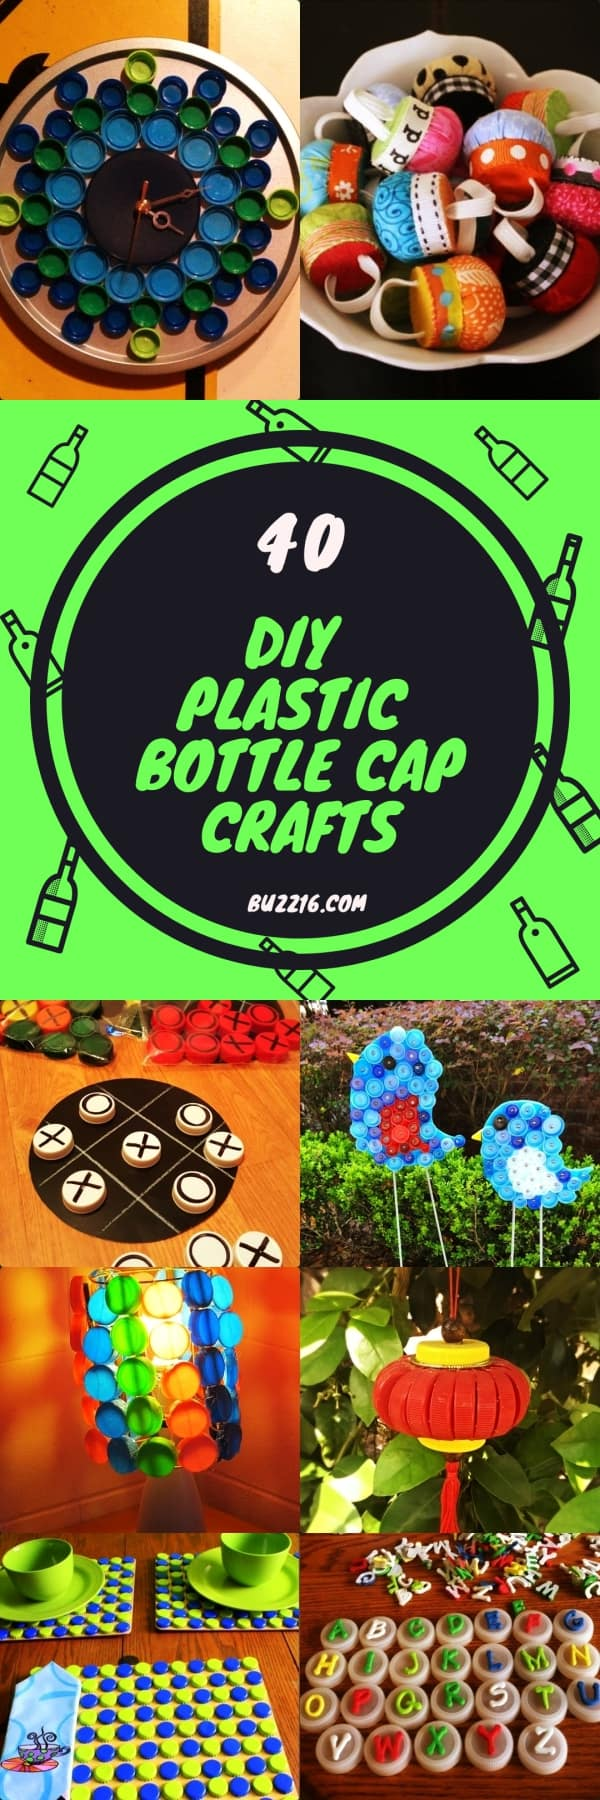 40 DIY Plastic Bottle Cap Craft Ideas